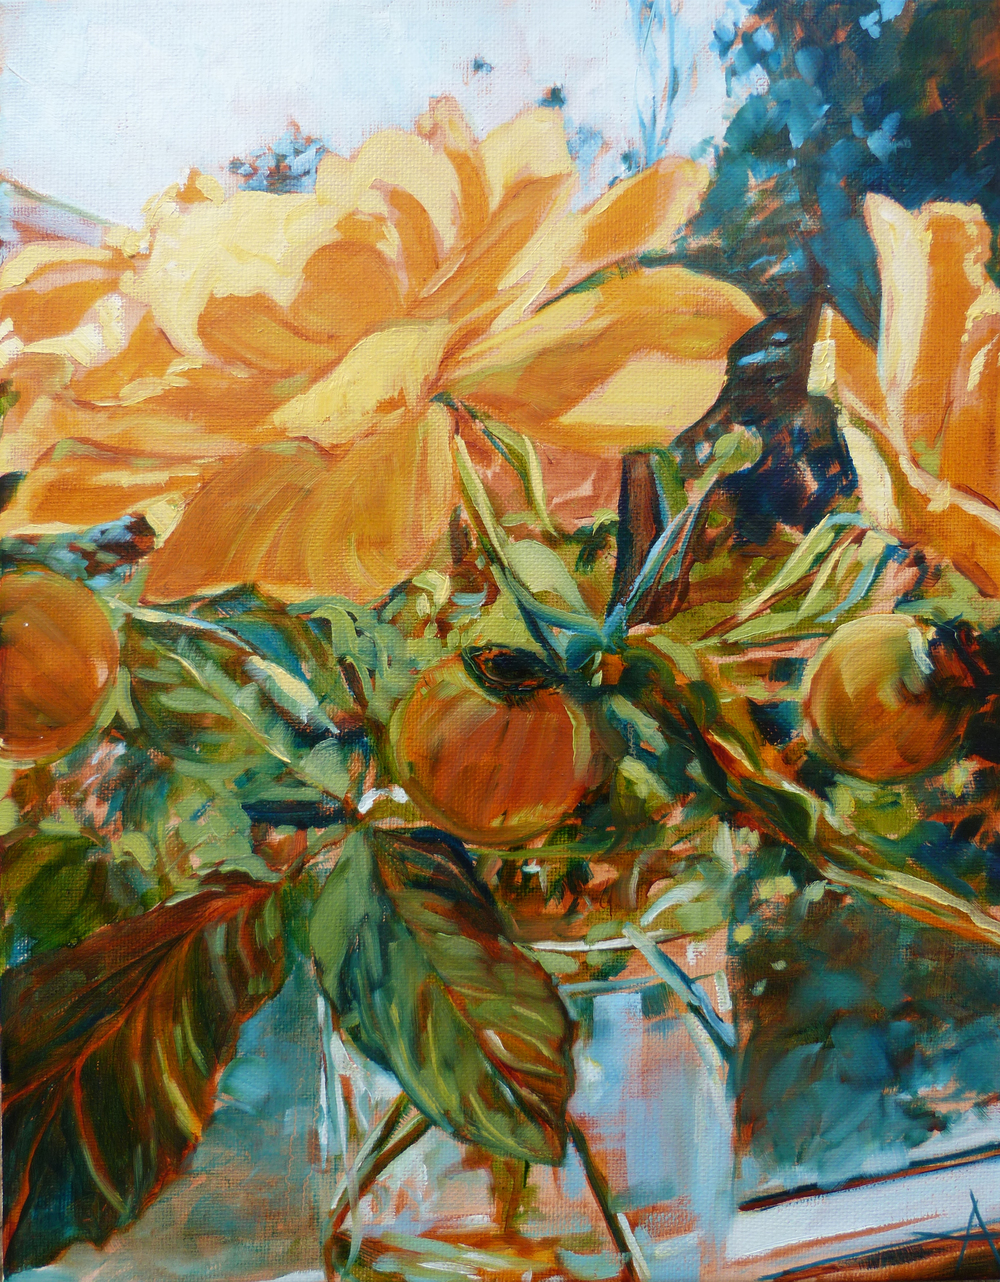 SOLD, Yellow Roses in the Window, Copyright 2014 Hirschten, Oil on Canvas, 11' x 14""